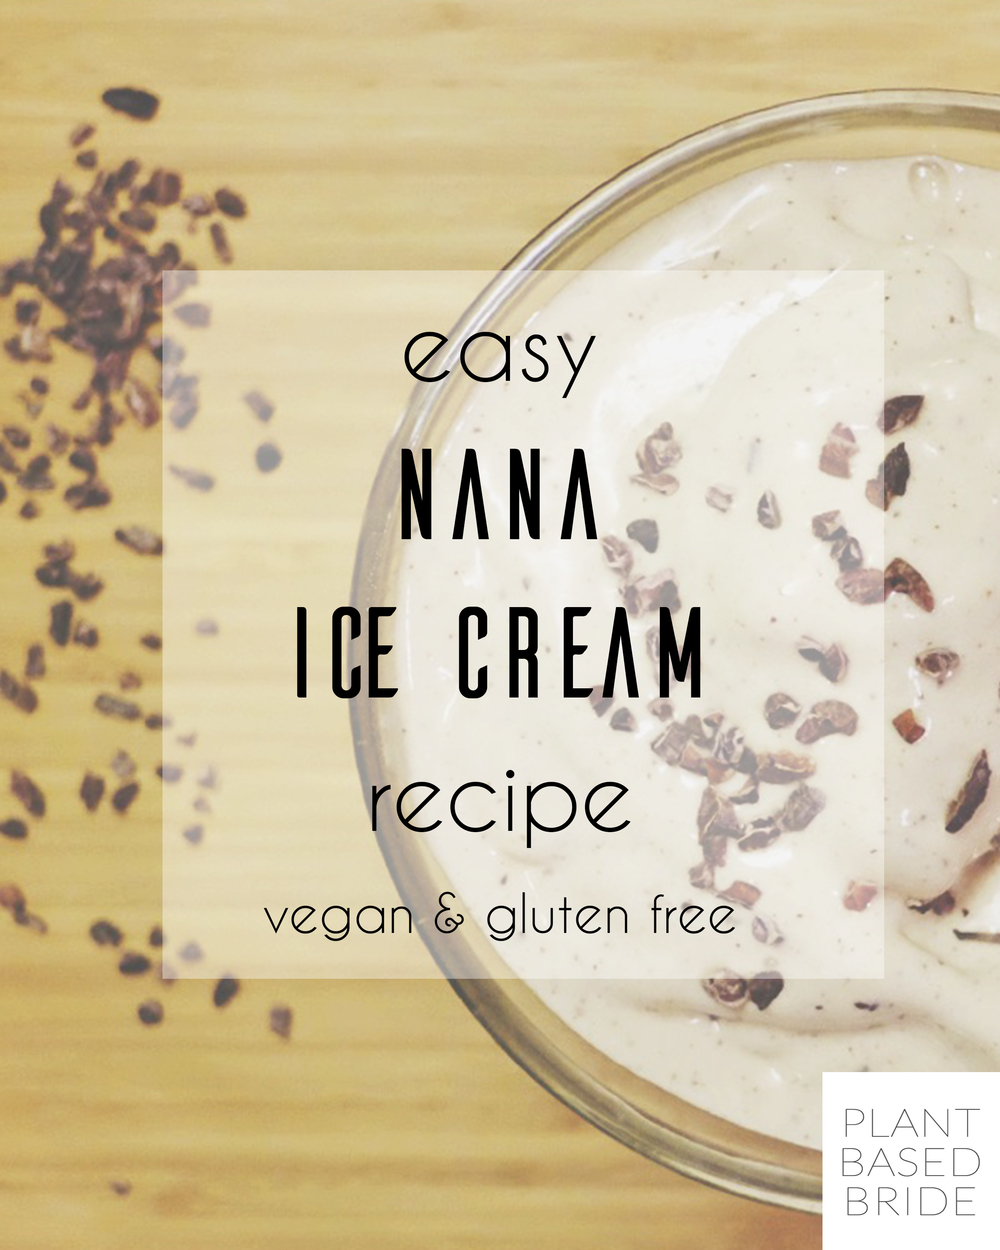 This is the simplest banana ice cream recipe out there!  So delicious and so easy.  Vegan and gluten-free nana ice cream for the win!